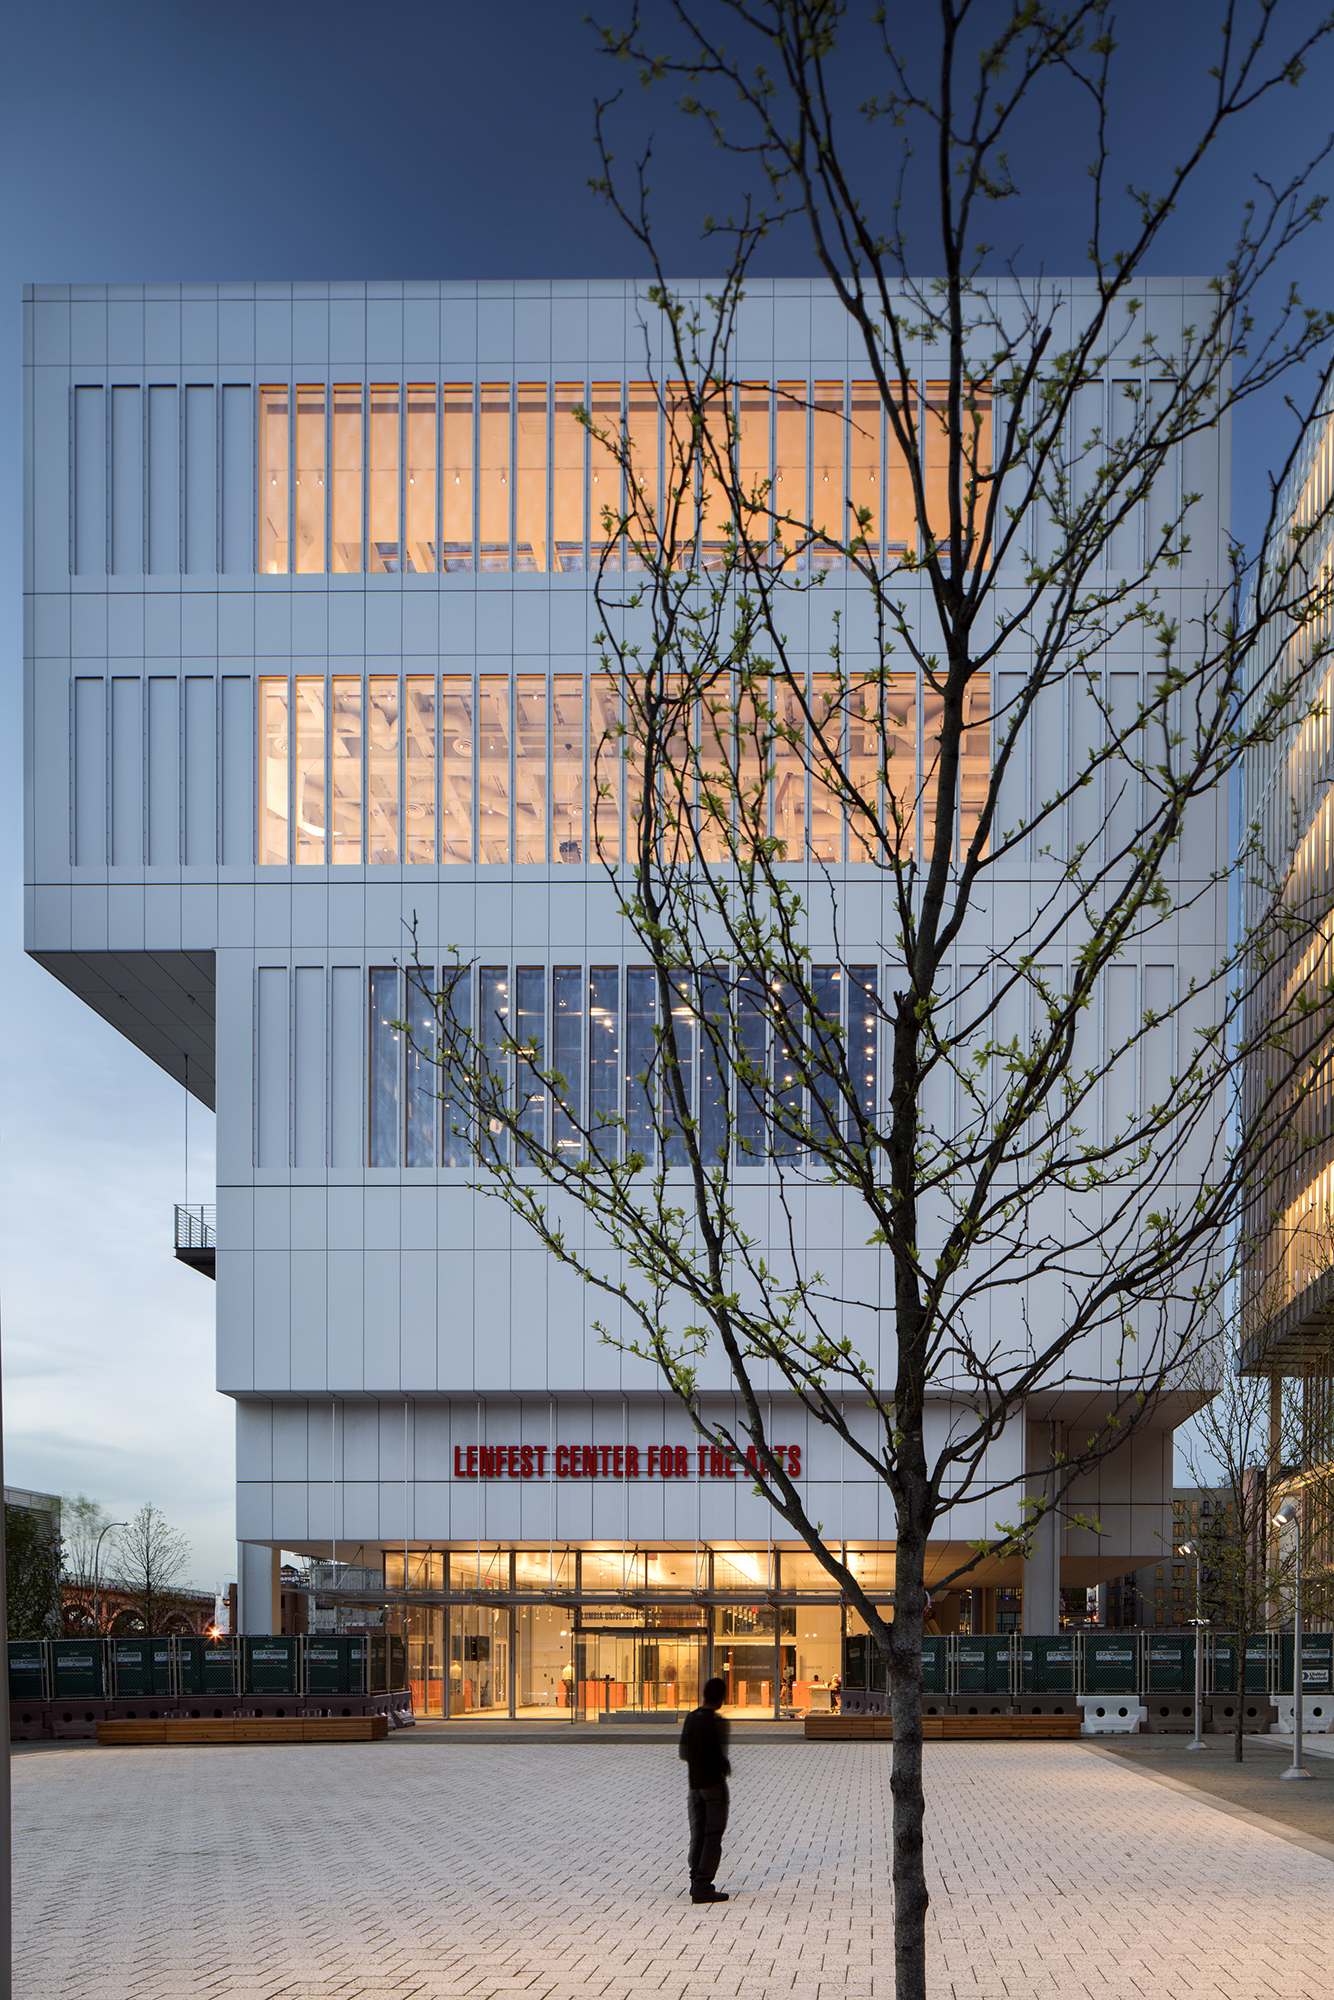 renzo piano building workshop | lenfest center for the arts cu manhattanville | new york usa